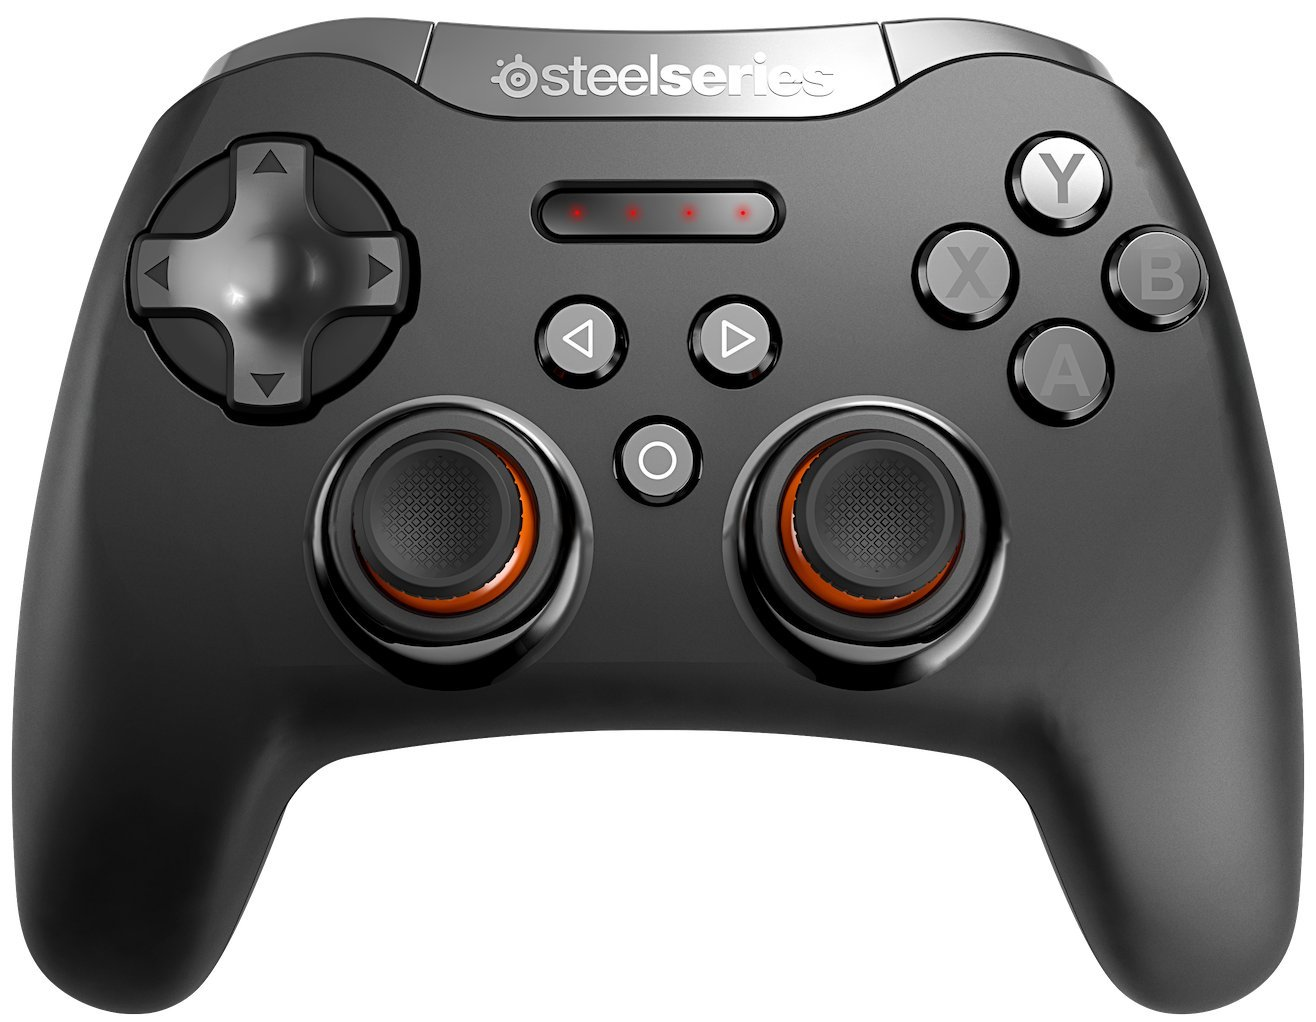 SteelSeries Stratus Mobile Gaming Controller